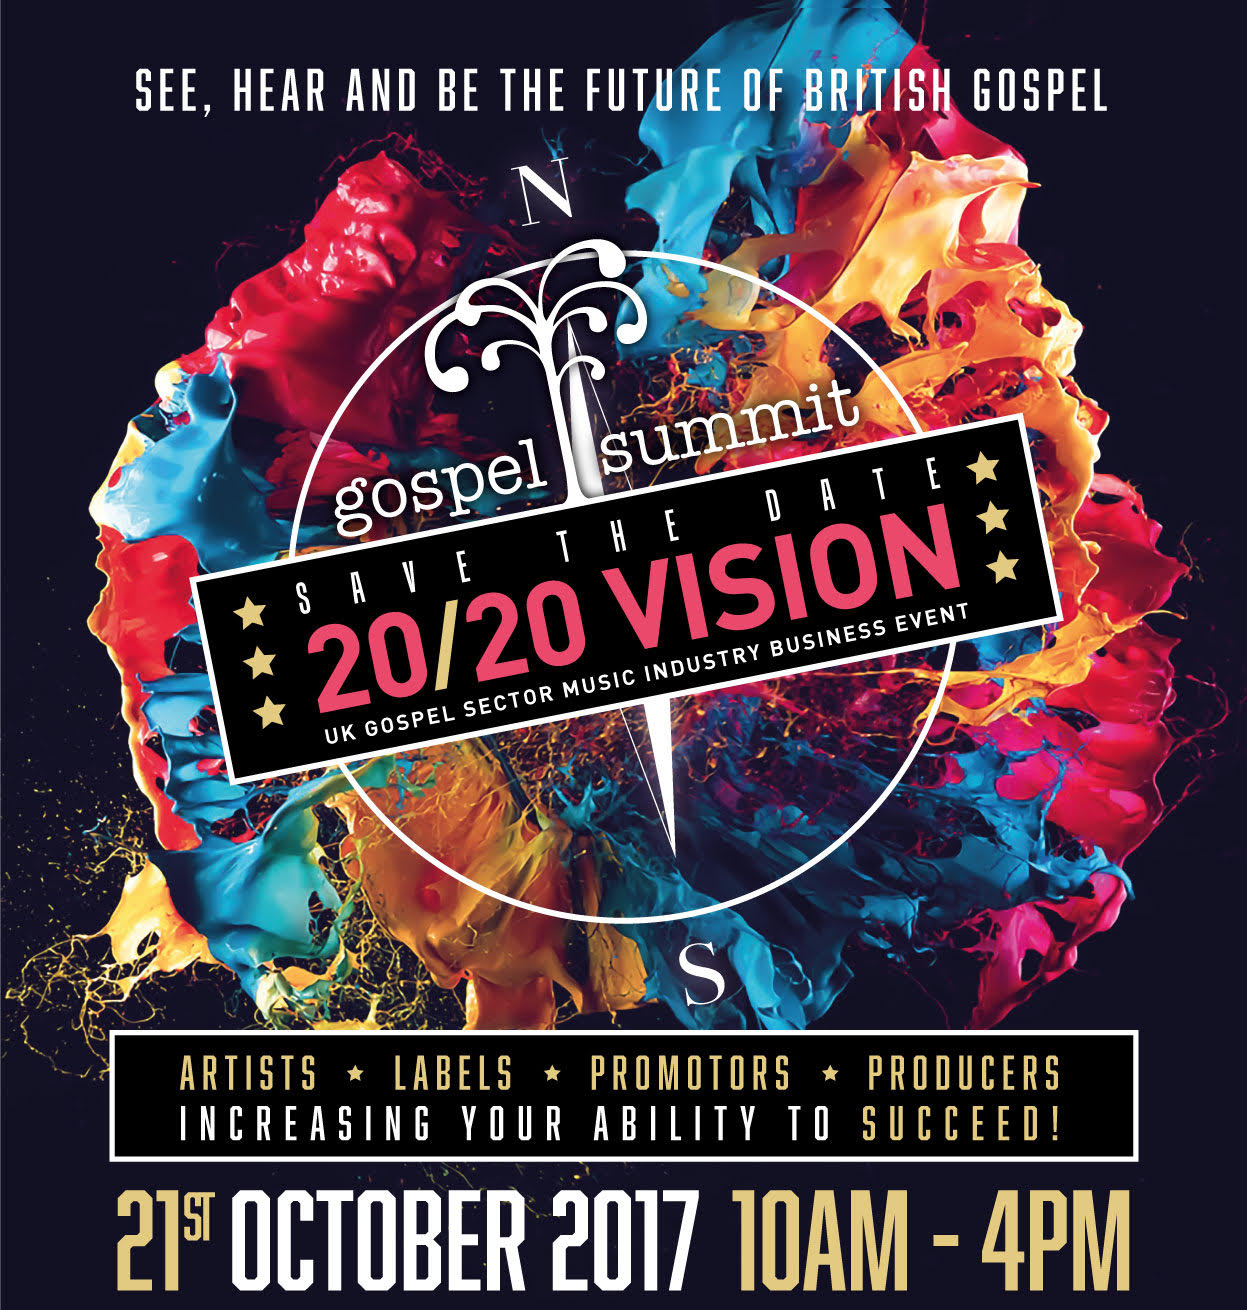 Gospel Summit 2017 Theme 20/20 Vision